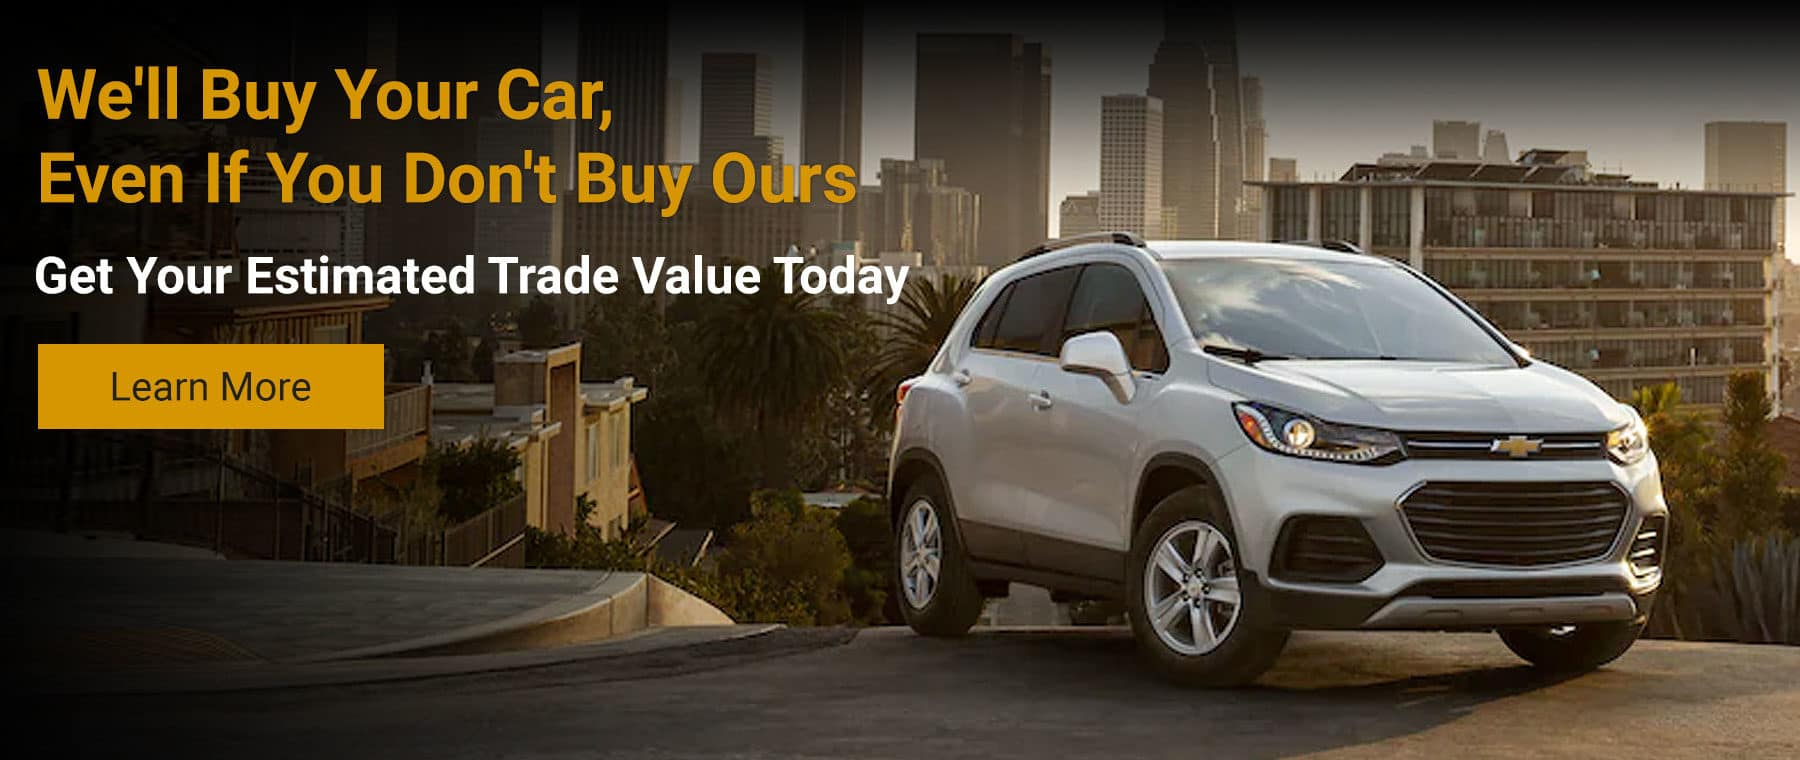 We'll Buy Your Car - Camp Chevrolet